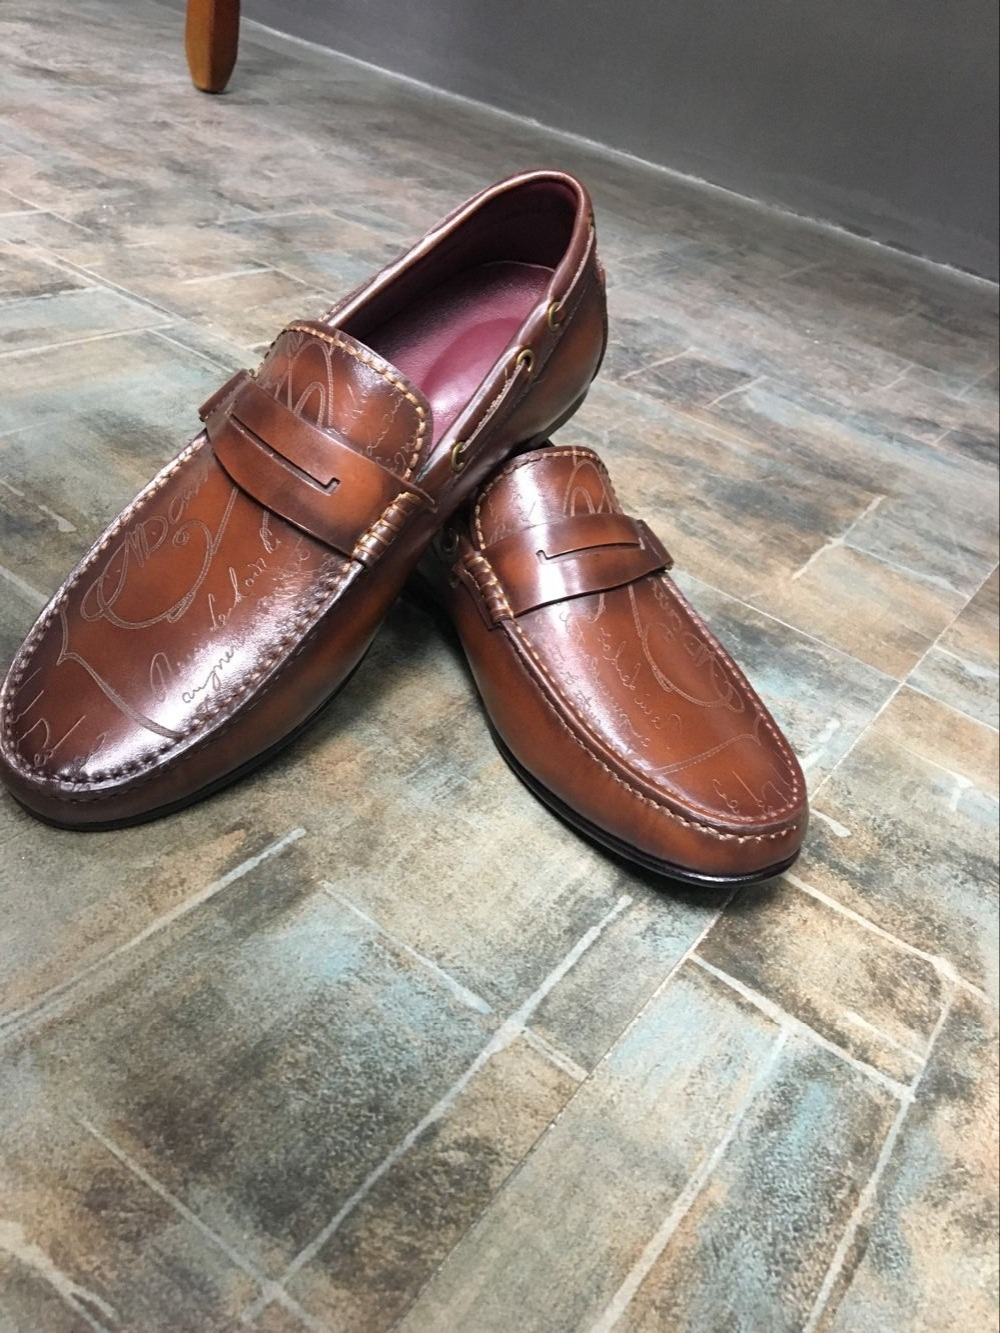 TERSE_Handmade leather loafers shoes mens Italian calfskin genuine leather dress shoes casual shoes goodyear welted flats shoes